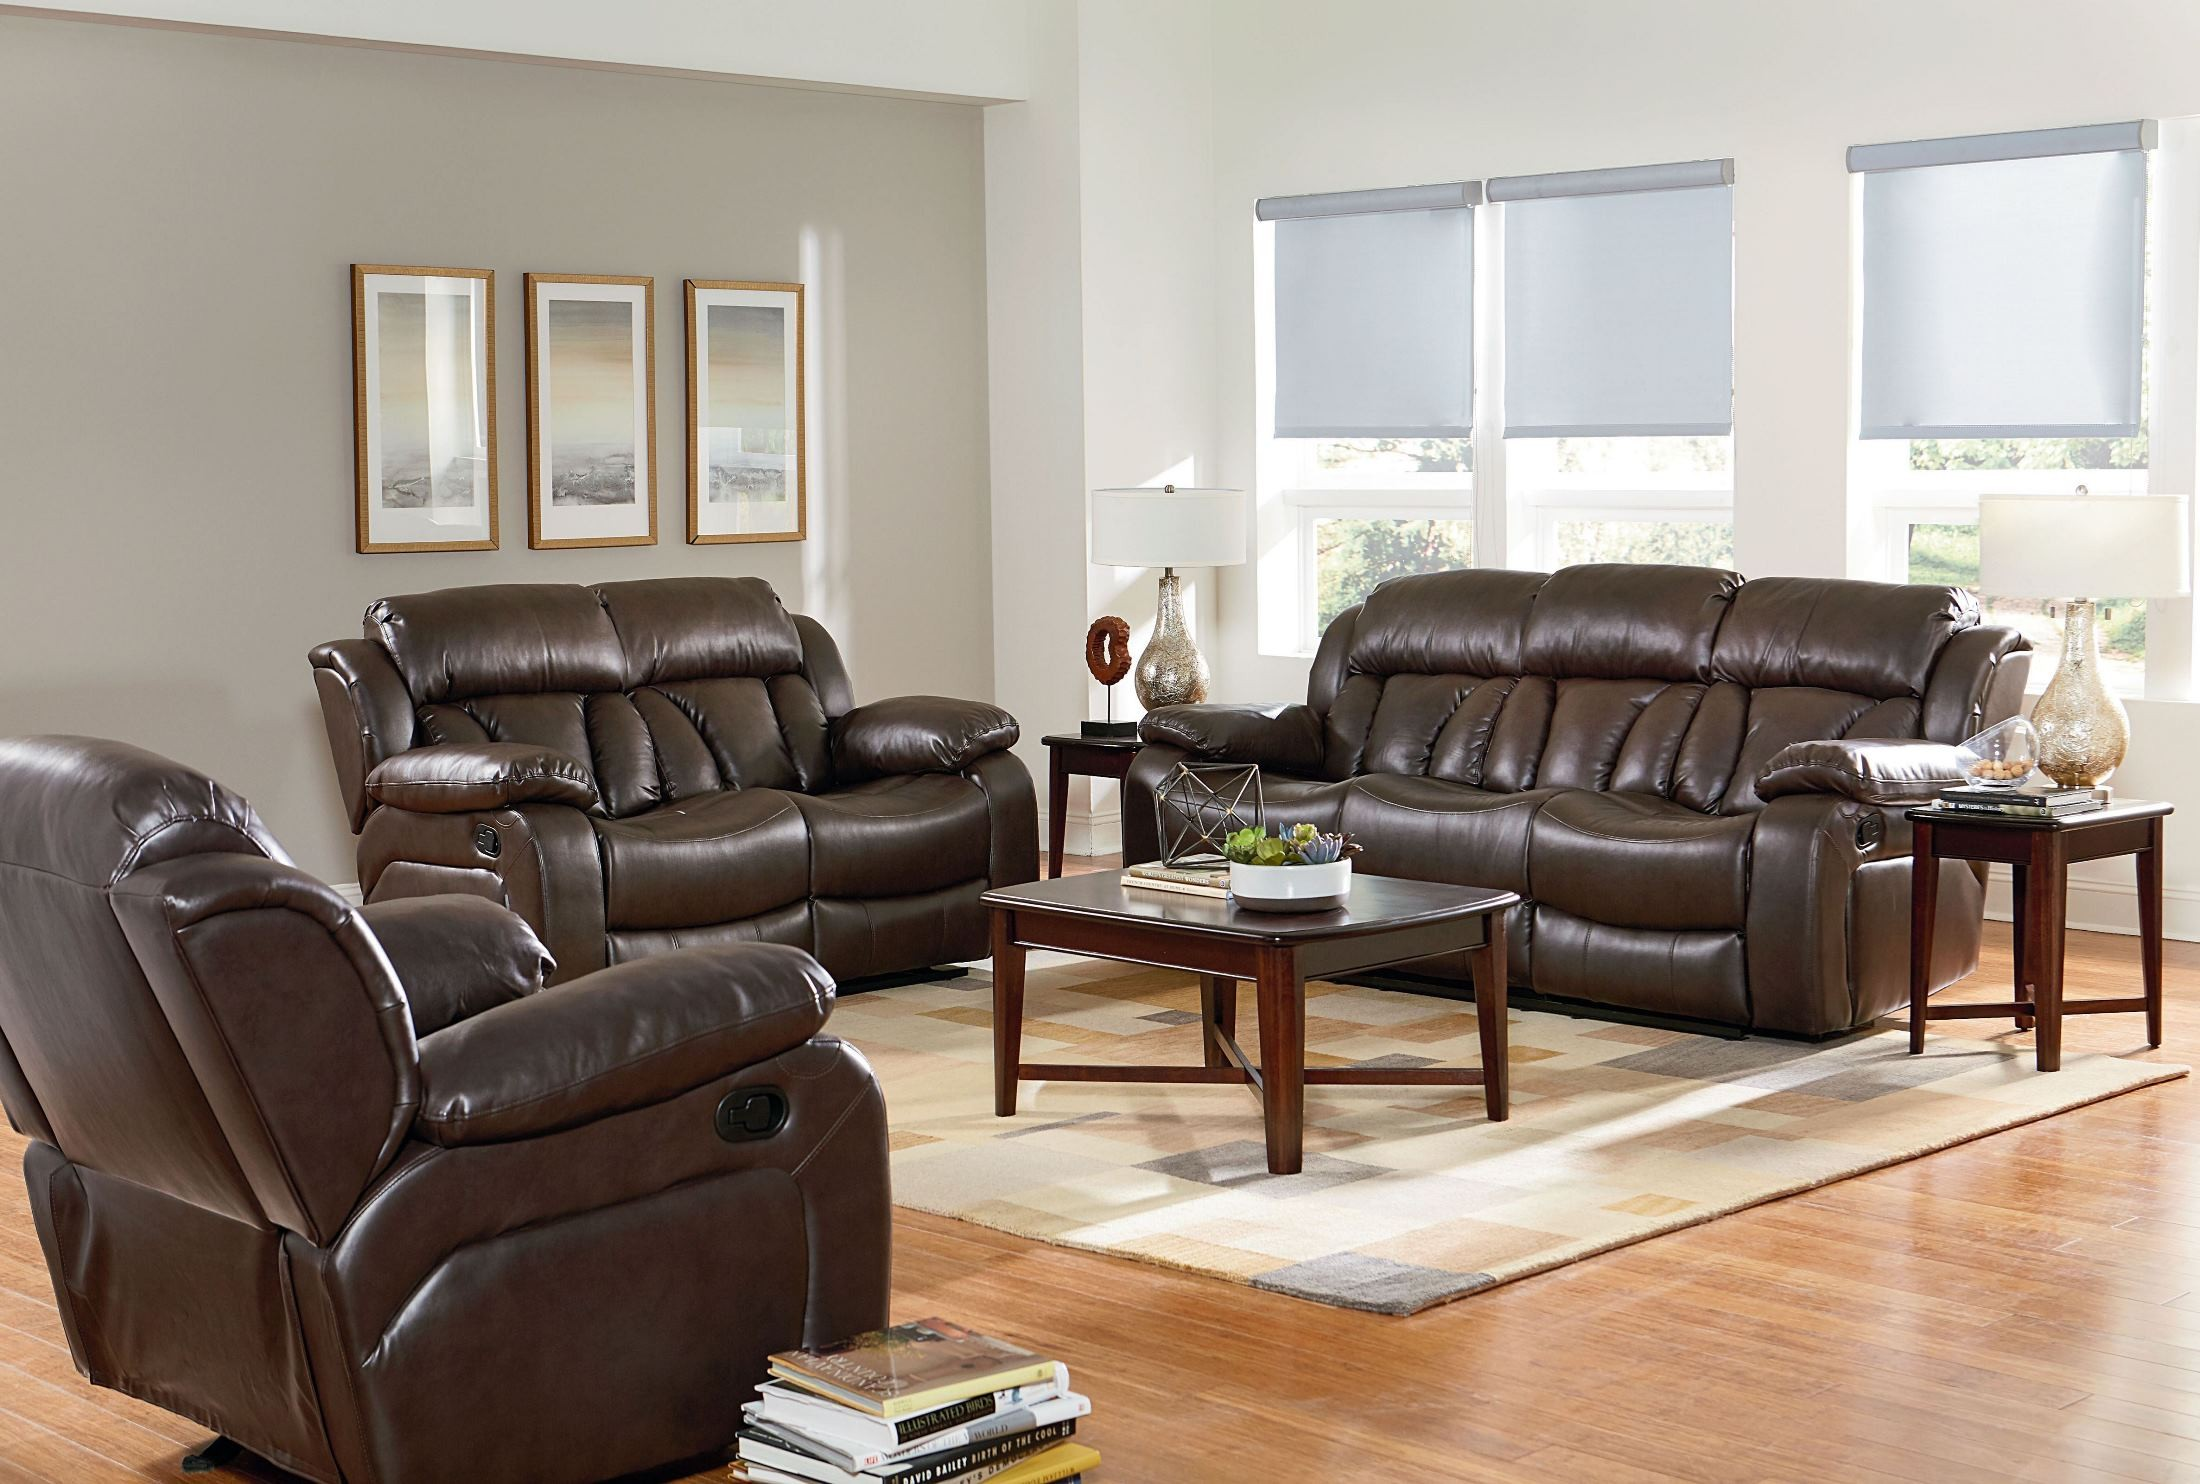 North shore chocolate brown reclining living room set from Reclining living room furniture